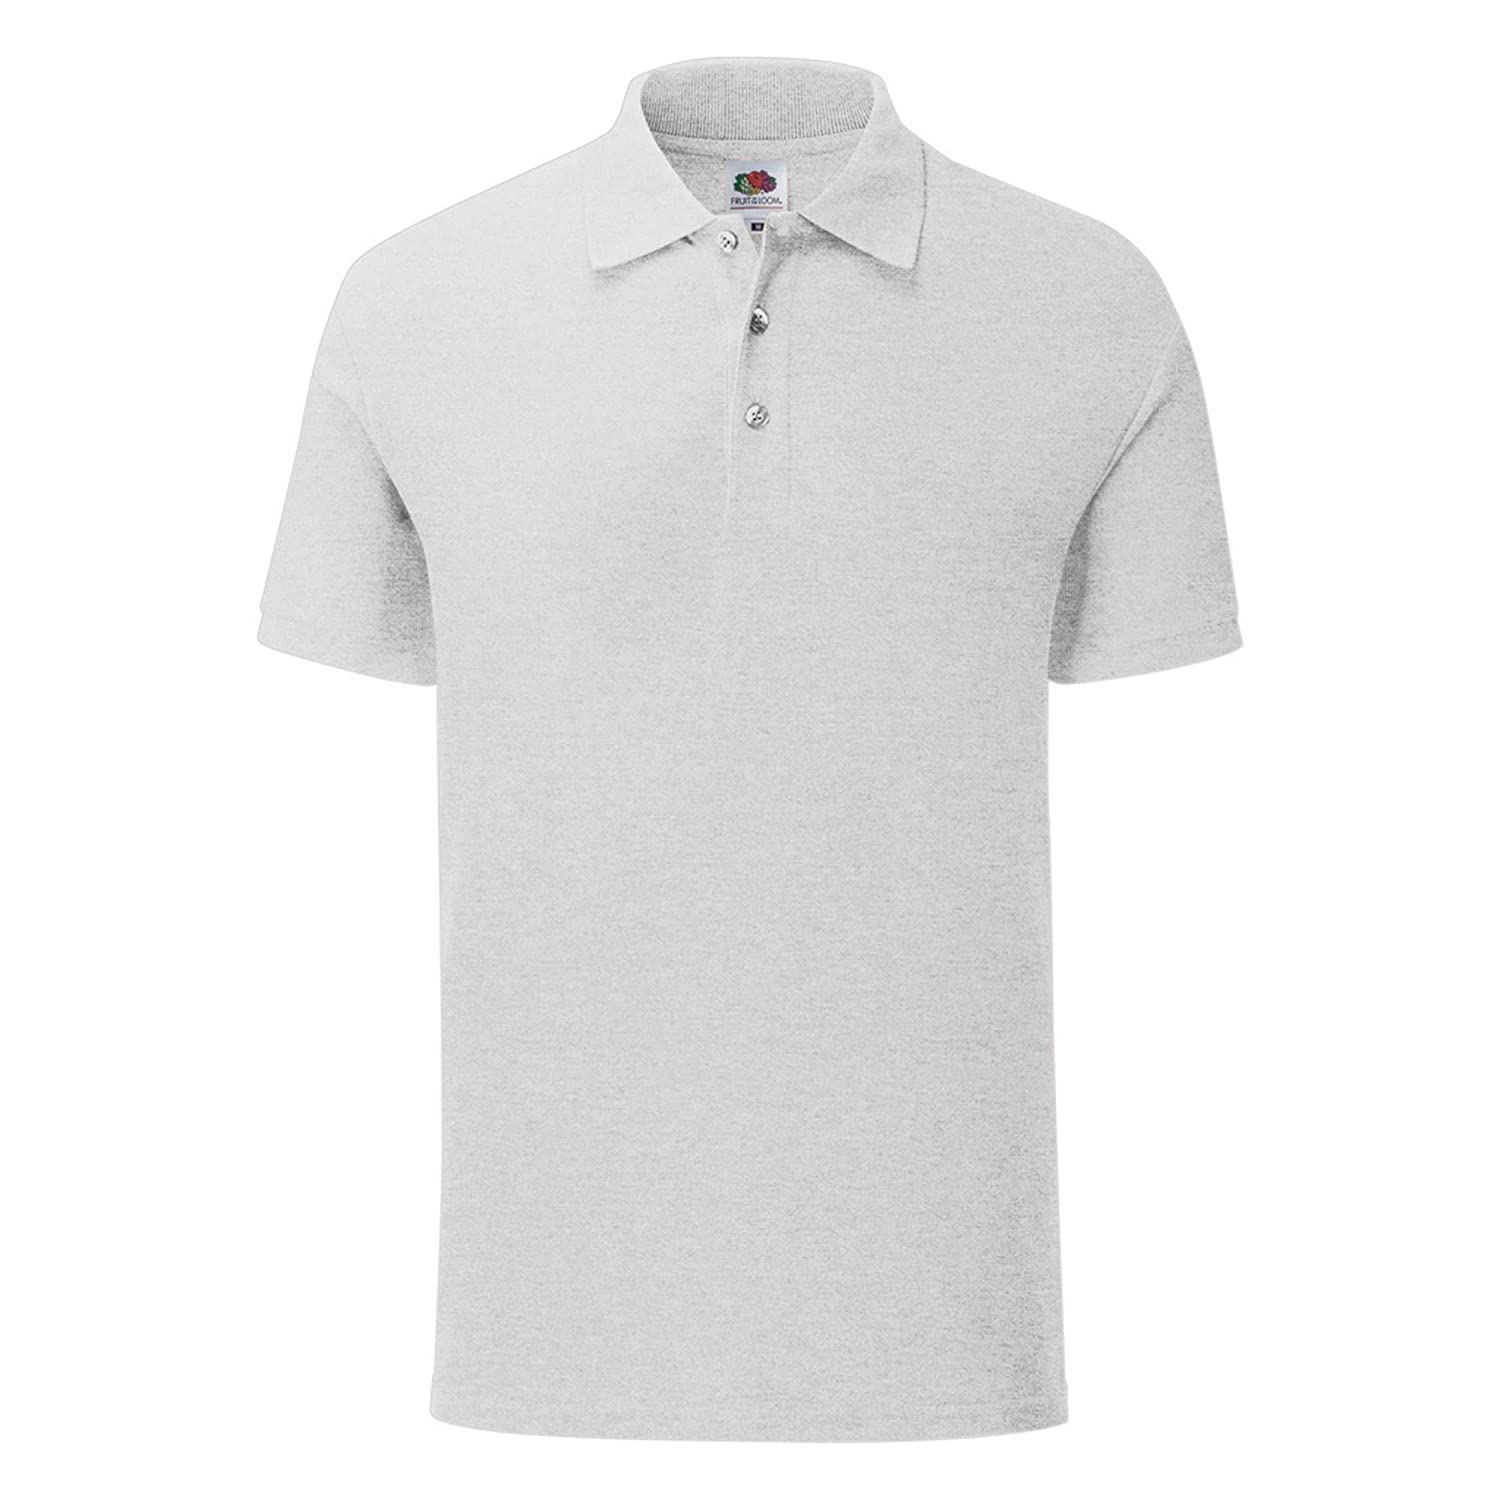 Fruit of the Loom Mens Iconic Pique Polo Shirt